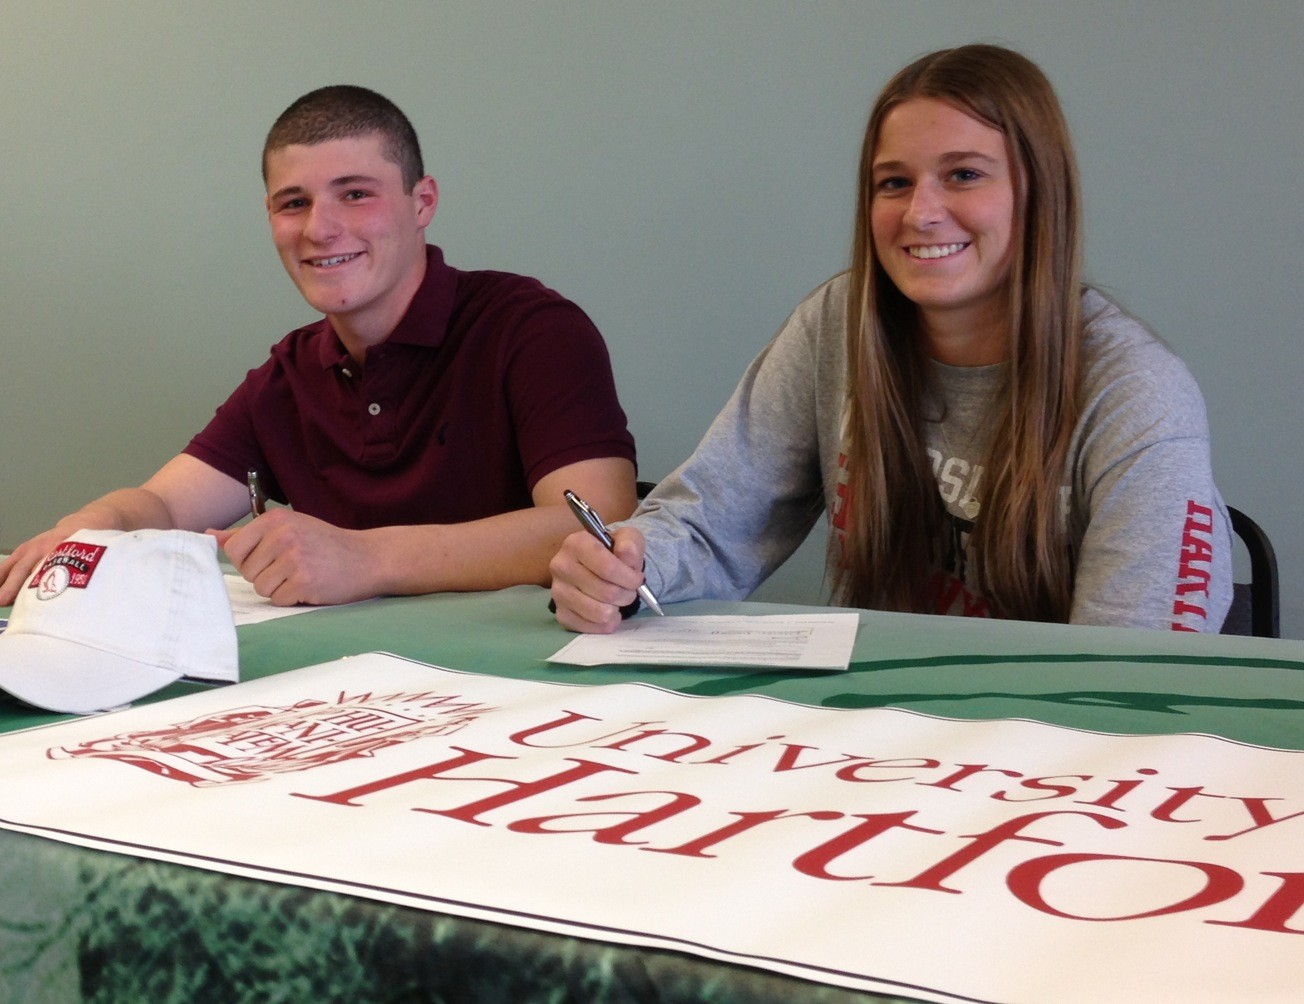 Justin Ganca and Lauren Sustad have signed with the University of Hartford to play baseball and softball. Above, the two signing their national letters of intent recently at Kennedy.